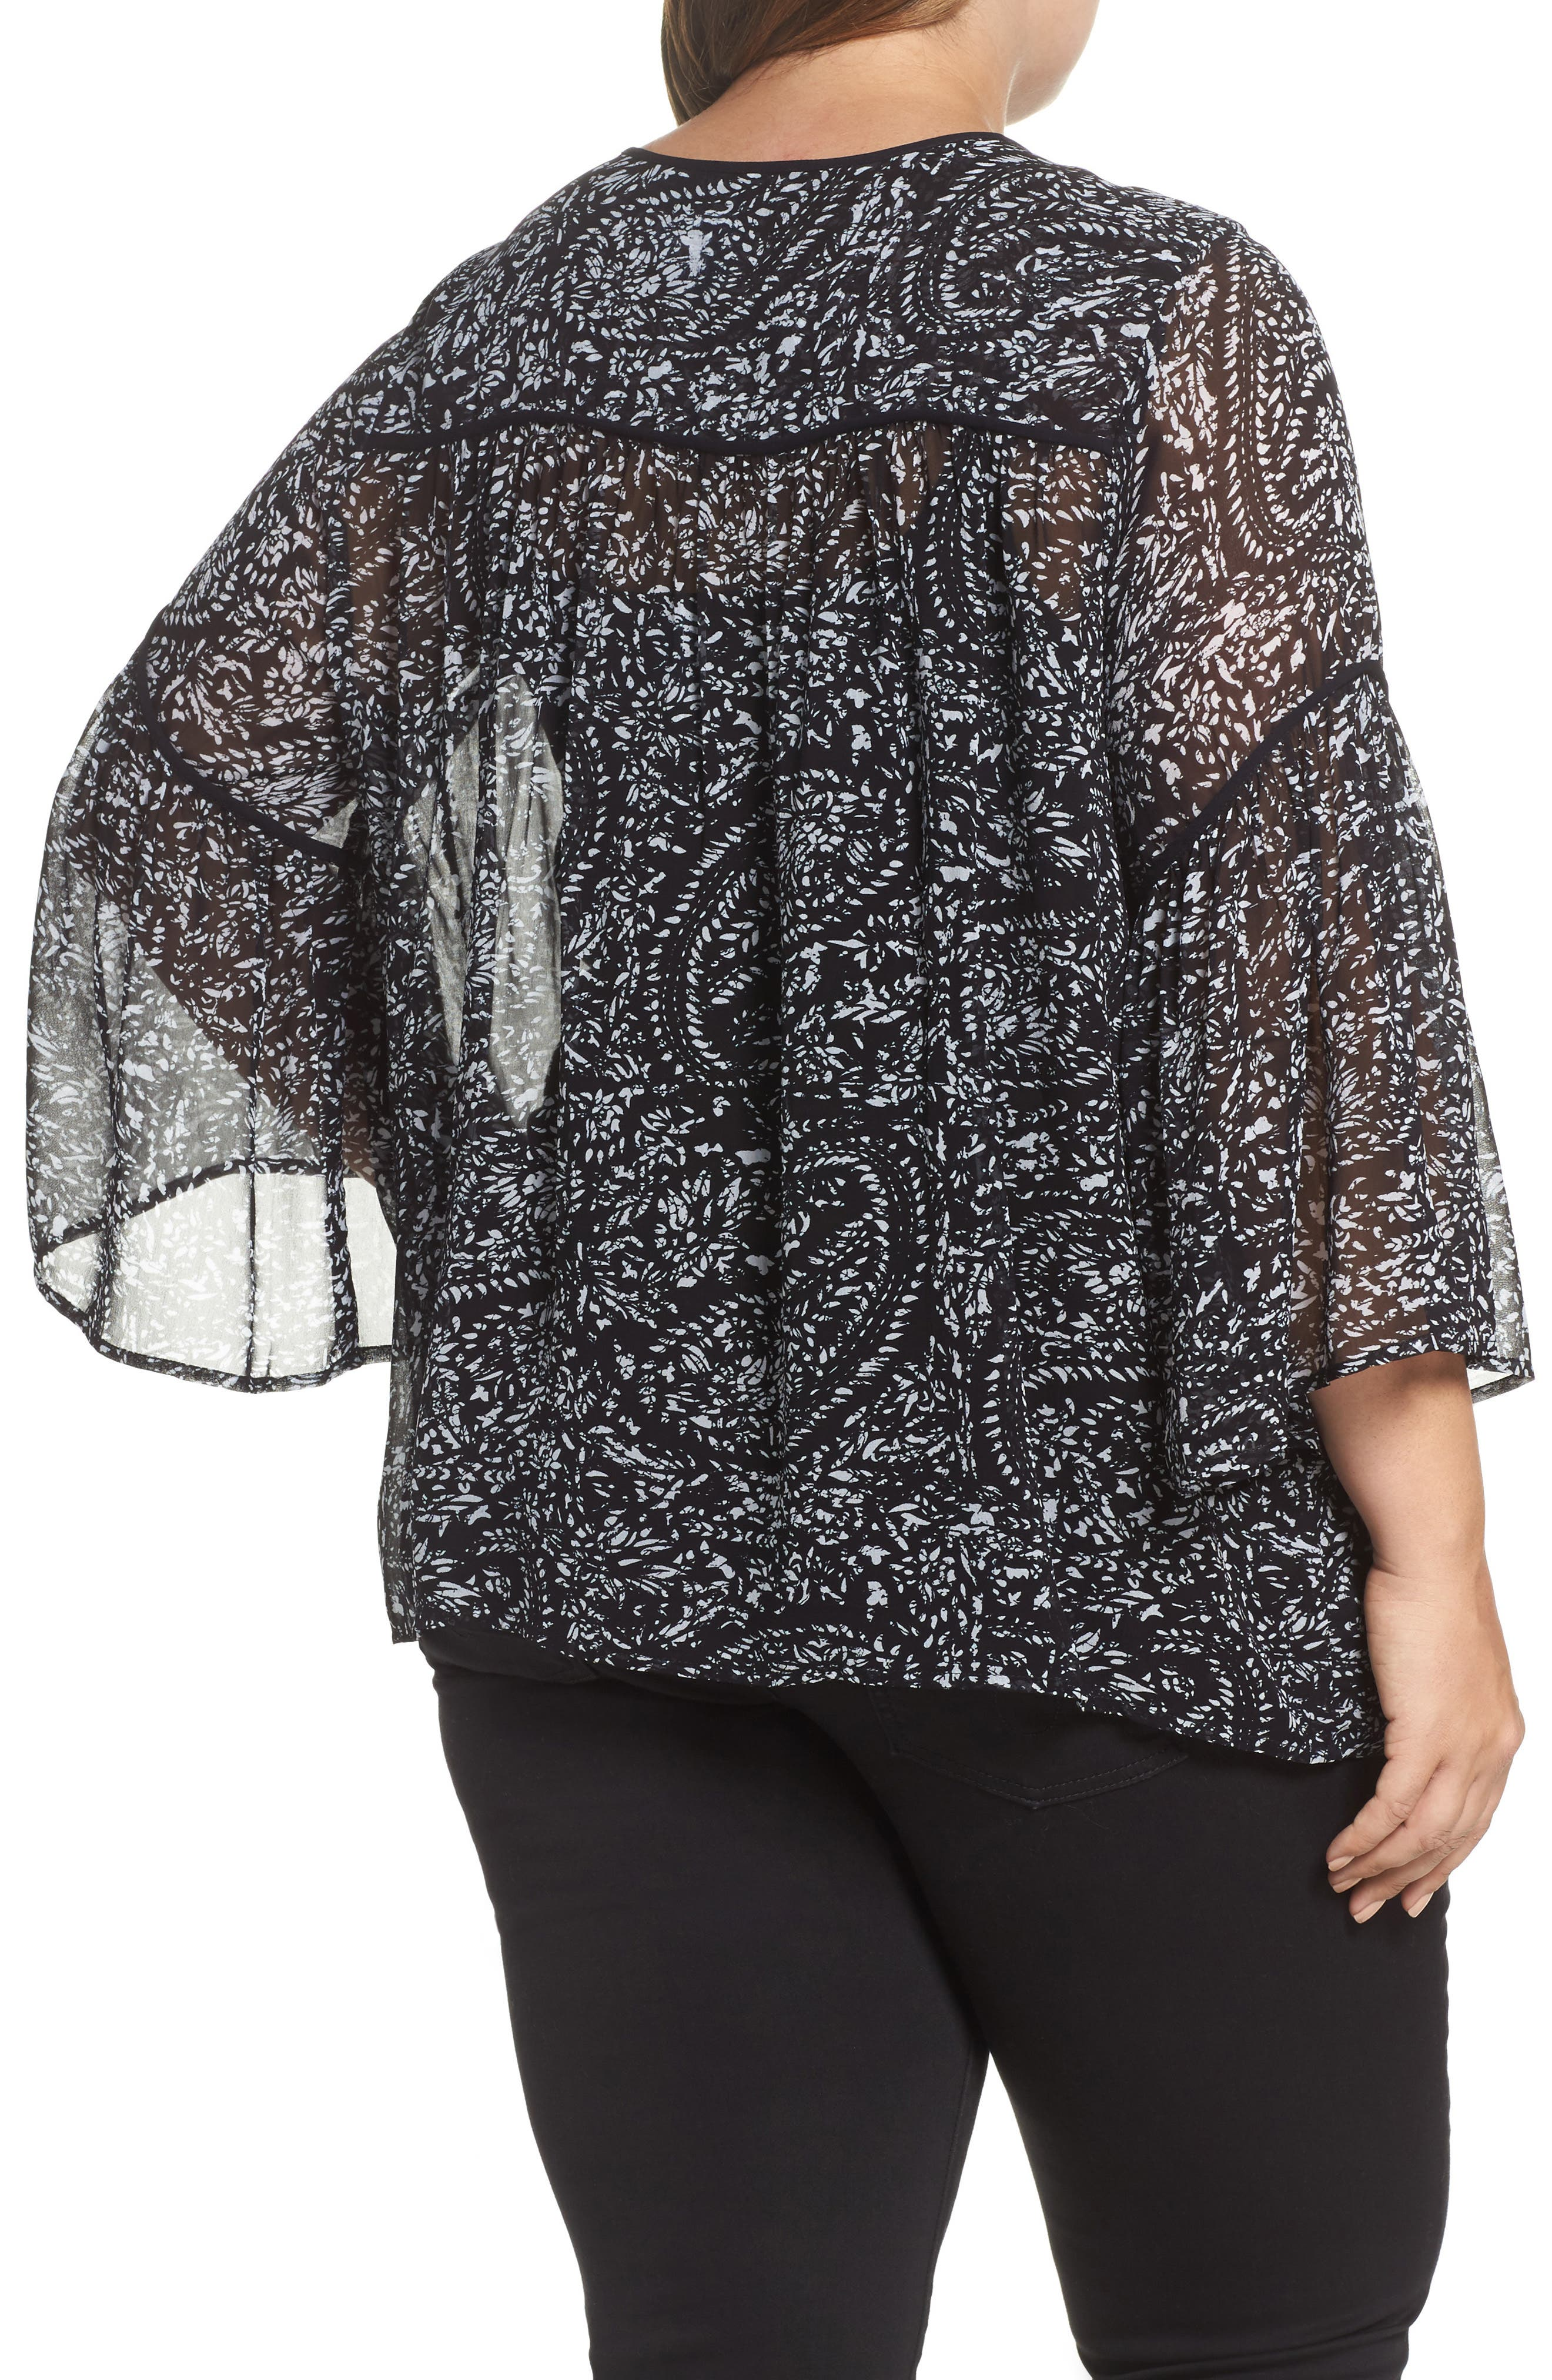 Paisley Print Bell Sleeve Top,                             Alternate thumbnail 2, color,